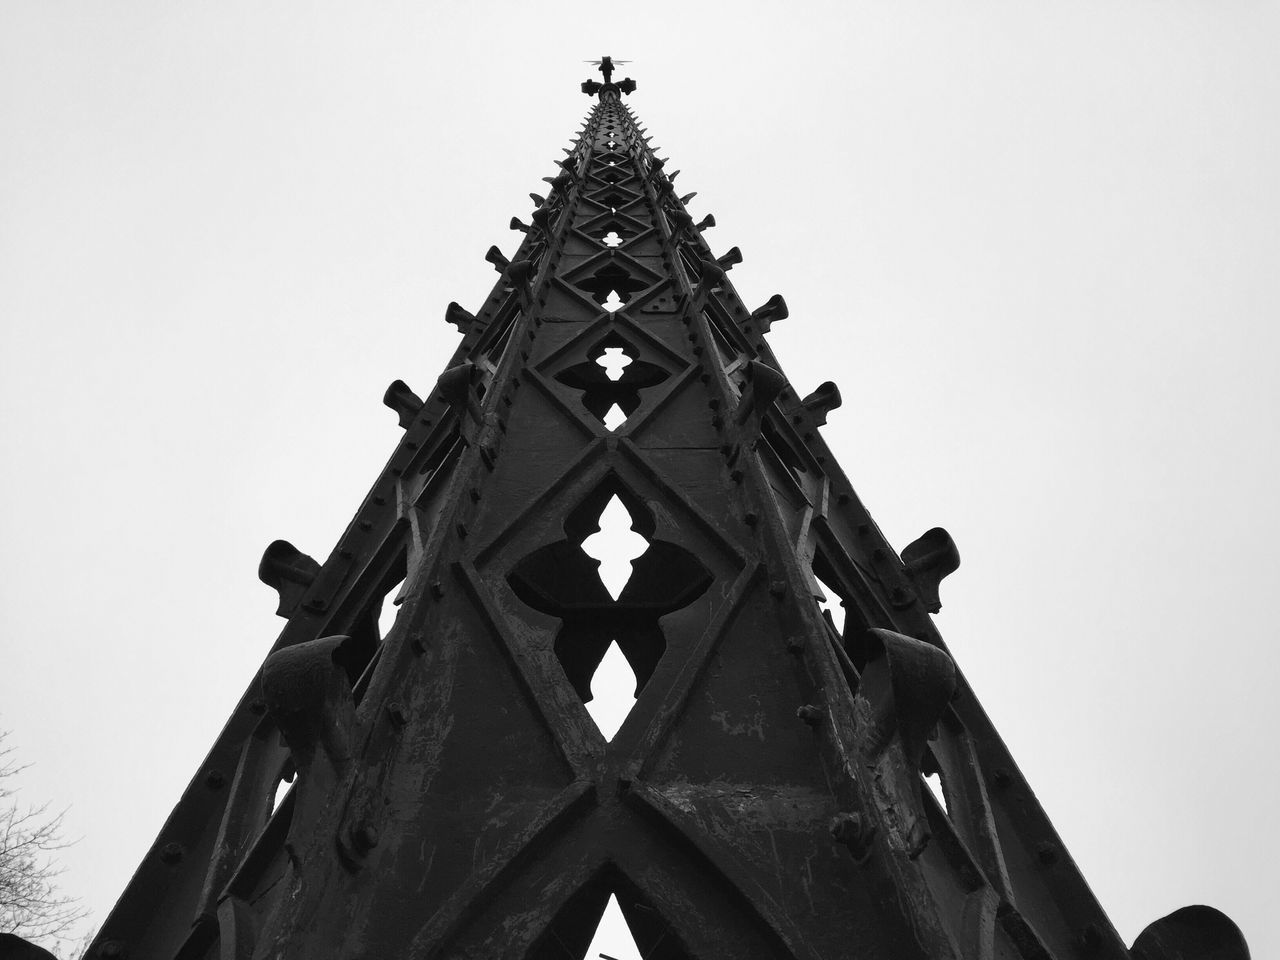 Low Angle View Clear Sky Built Structure Architecture Building Exterior Day Spirituality Religion Outdoors No People Place Of Worship Sculpture Sky Minimalism EyeEm Team Minimalist Minimalism_bw EyeEm Bnw EyeEm Shadows EyeEm Best Shots Building Story Streetphoto_bw